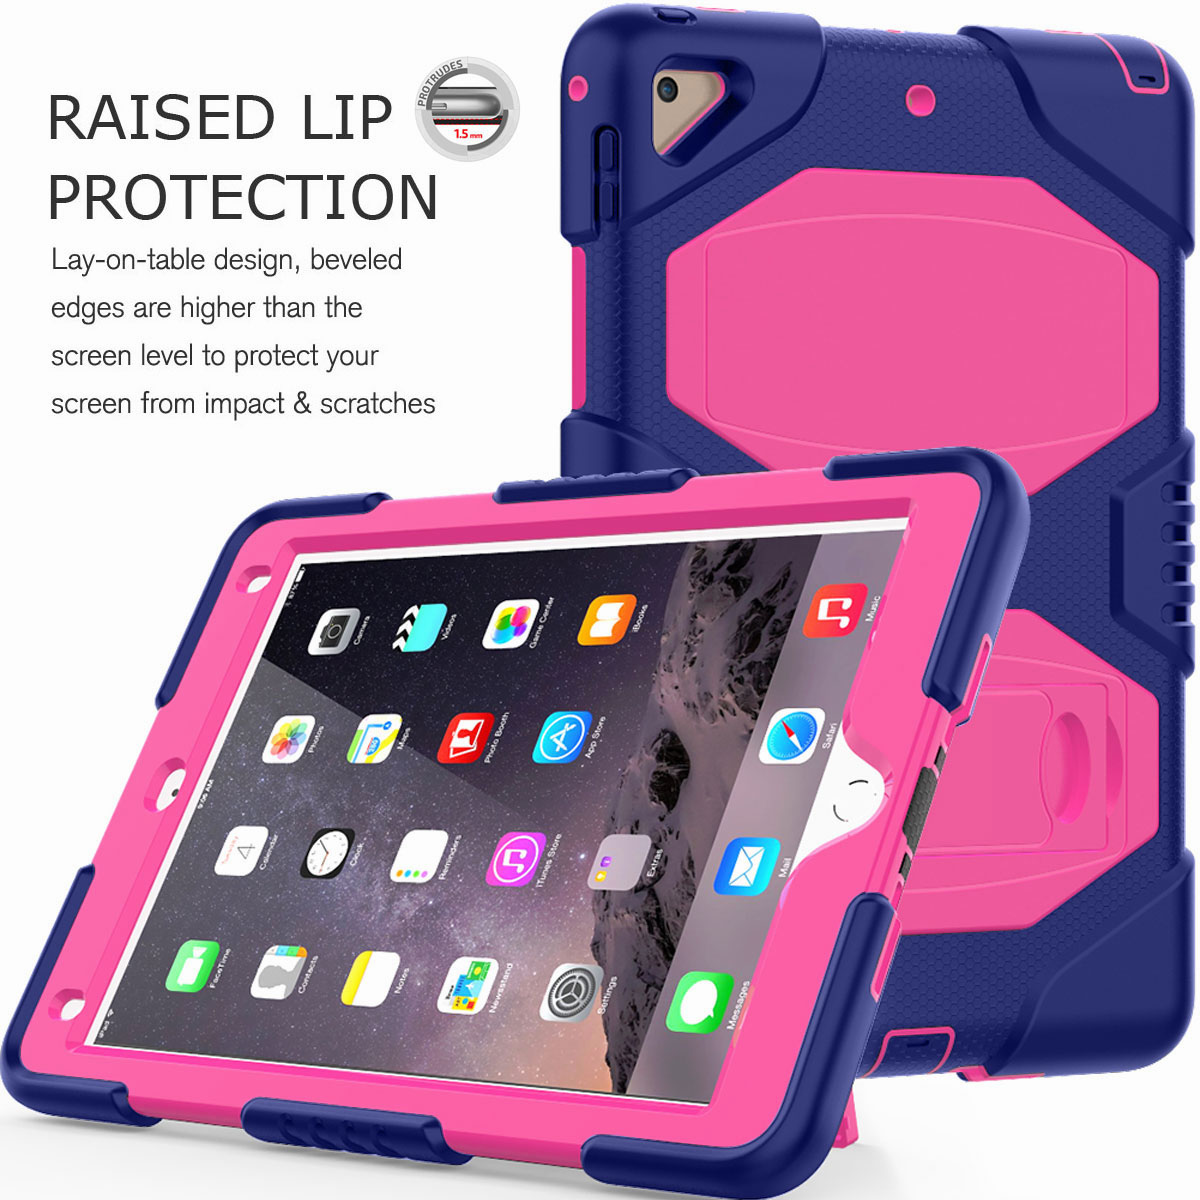 Hybrid-Rubber-Heavy-Duty-Shockproof-Case-Cover-For-iPad-9-7-6th-Generation-2018 thumbnail 45